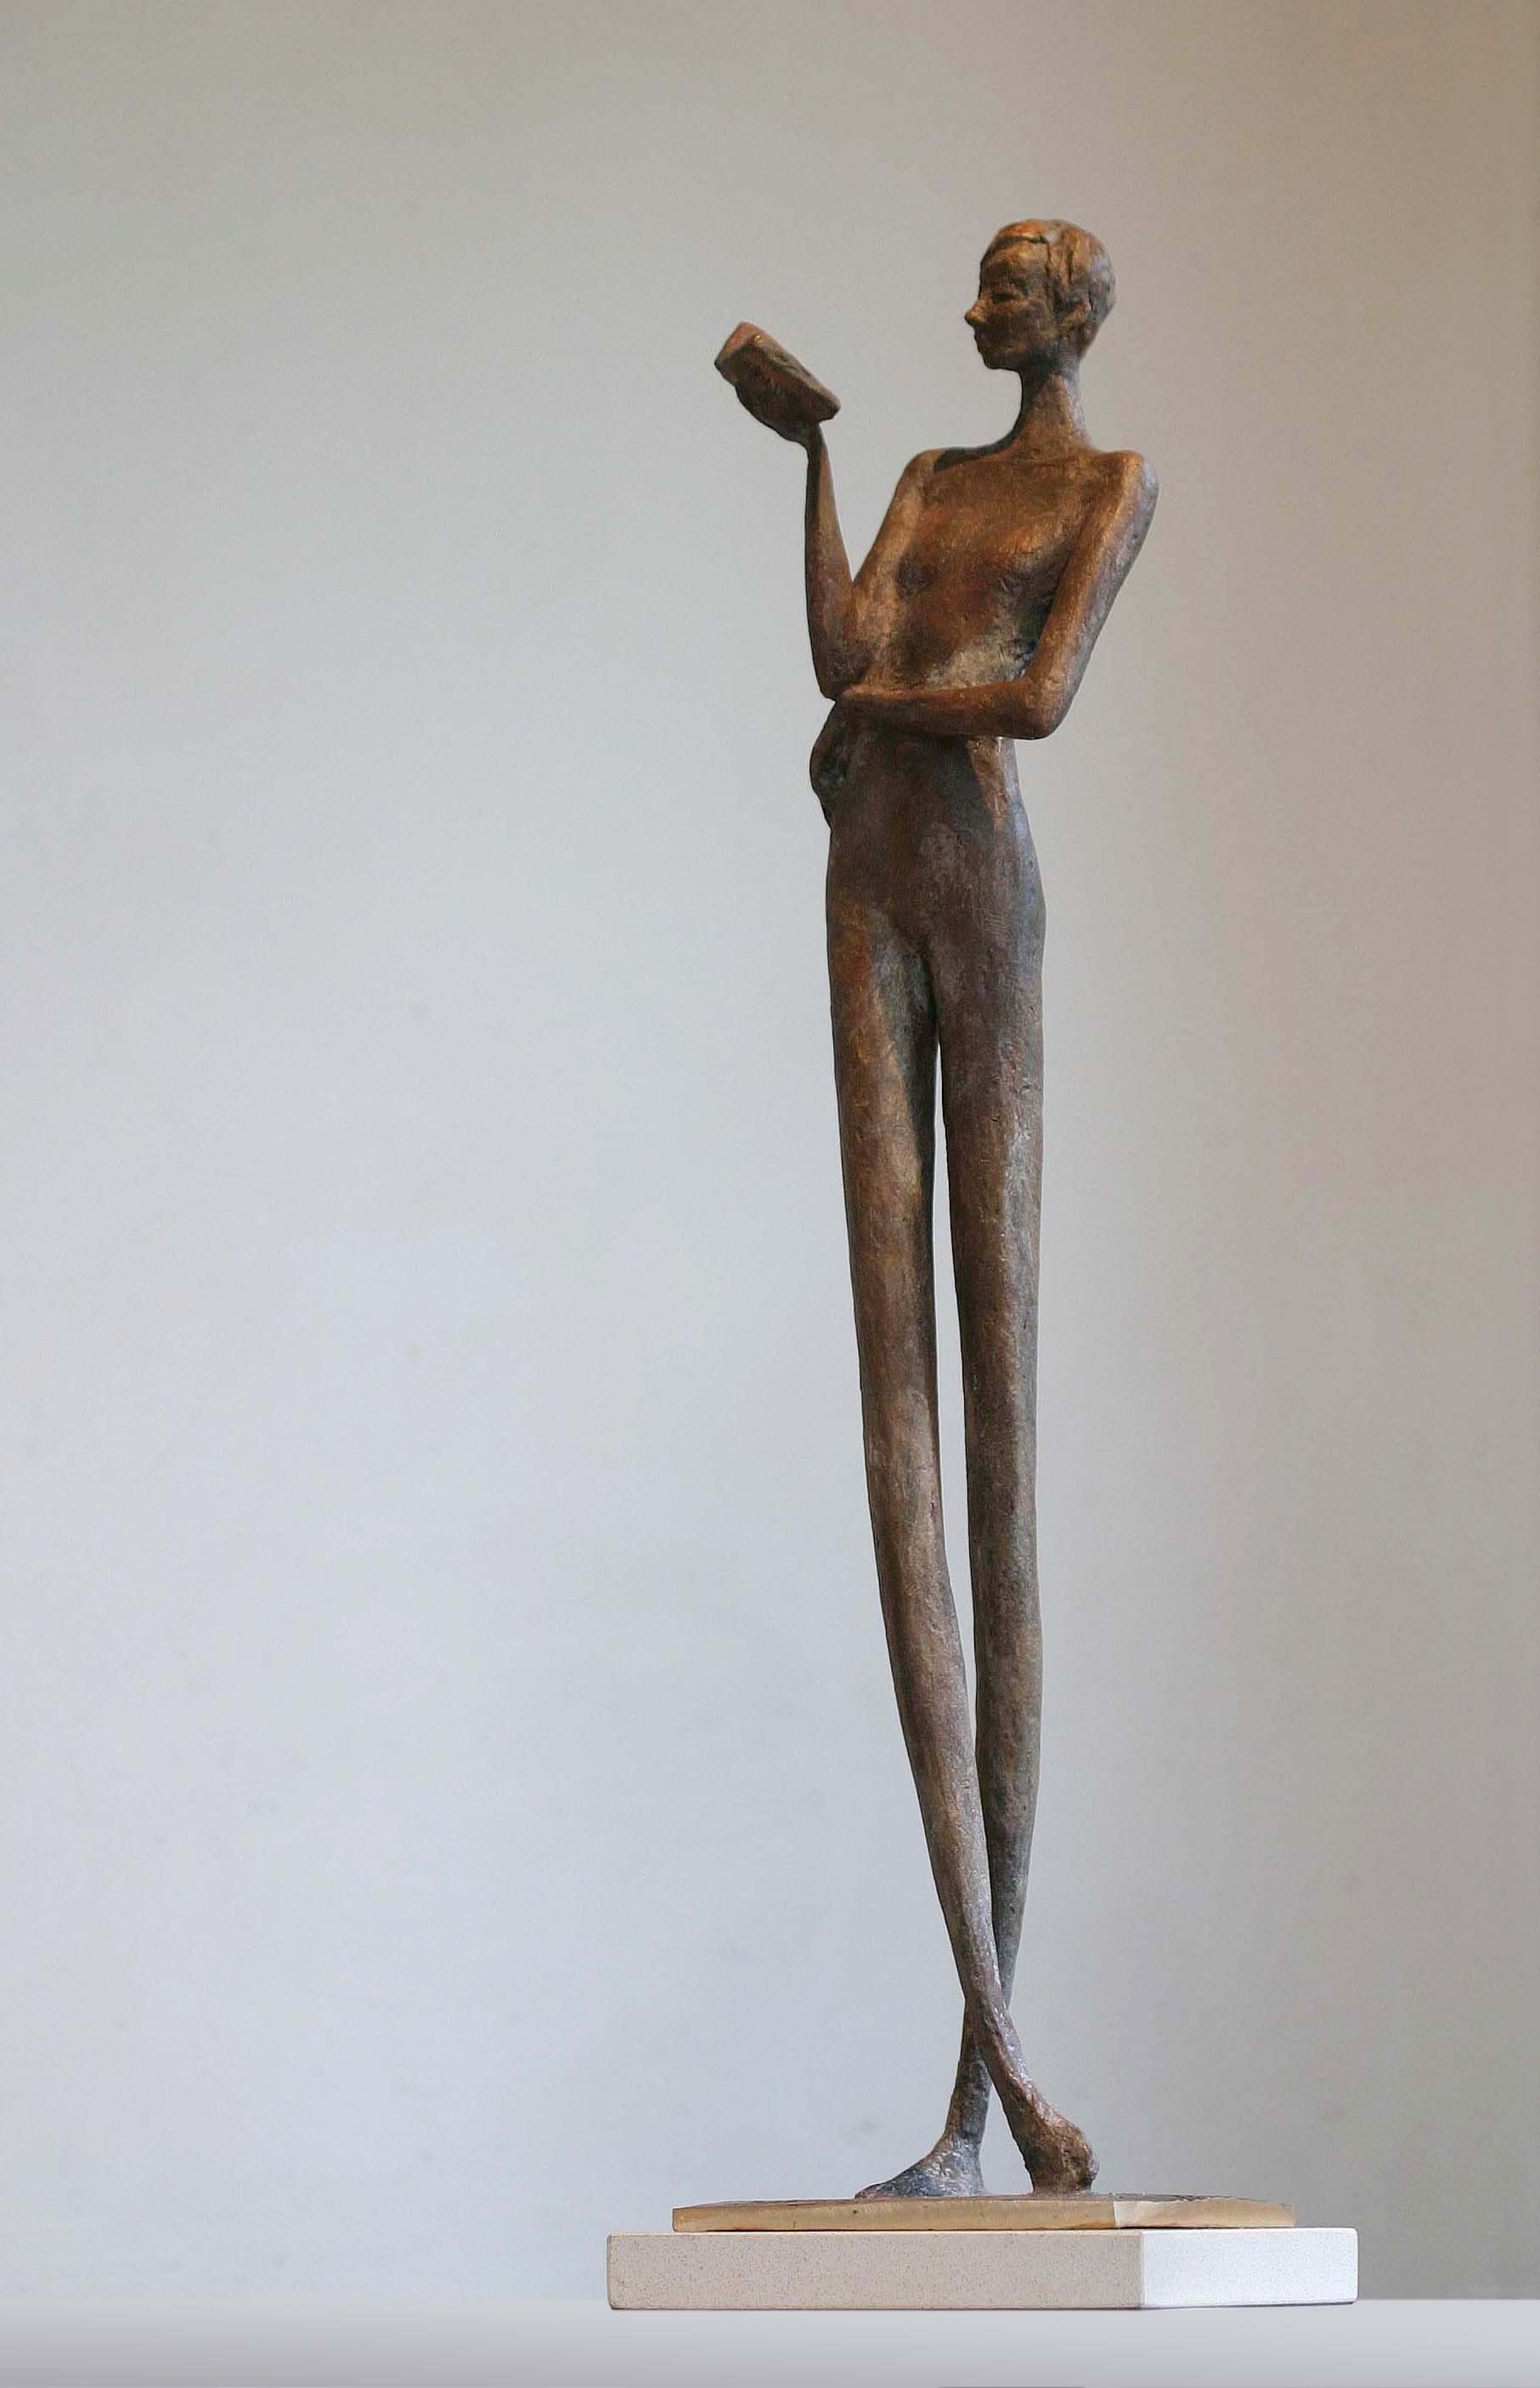 'Between Takes', Bronze, edt 2 of 9, 55cm x 12.5cm x 13cm